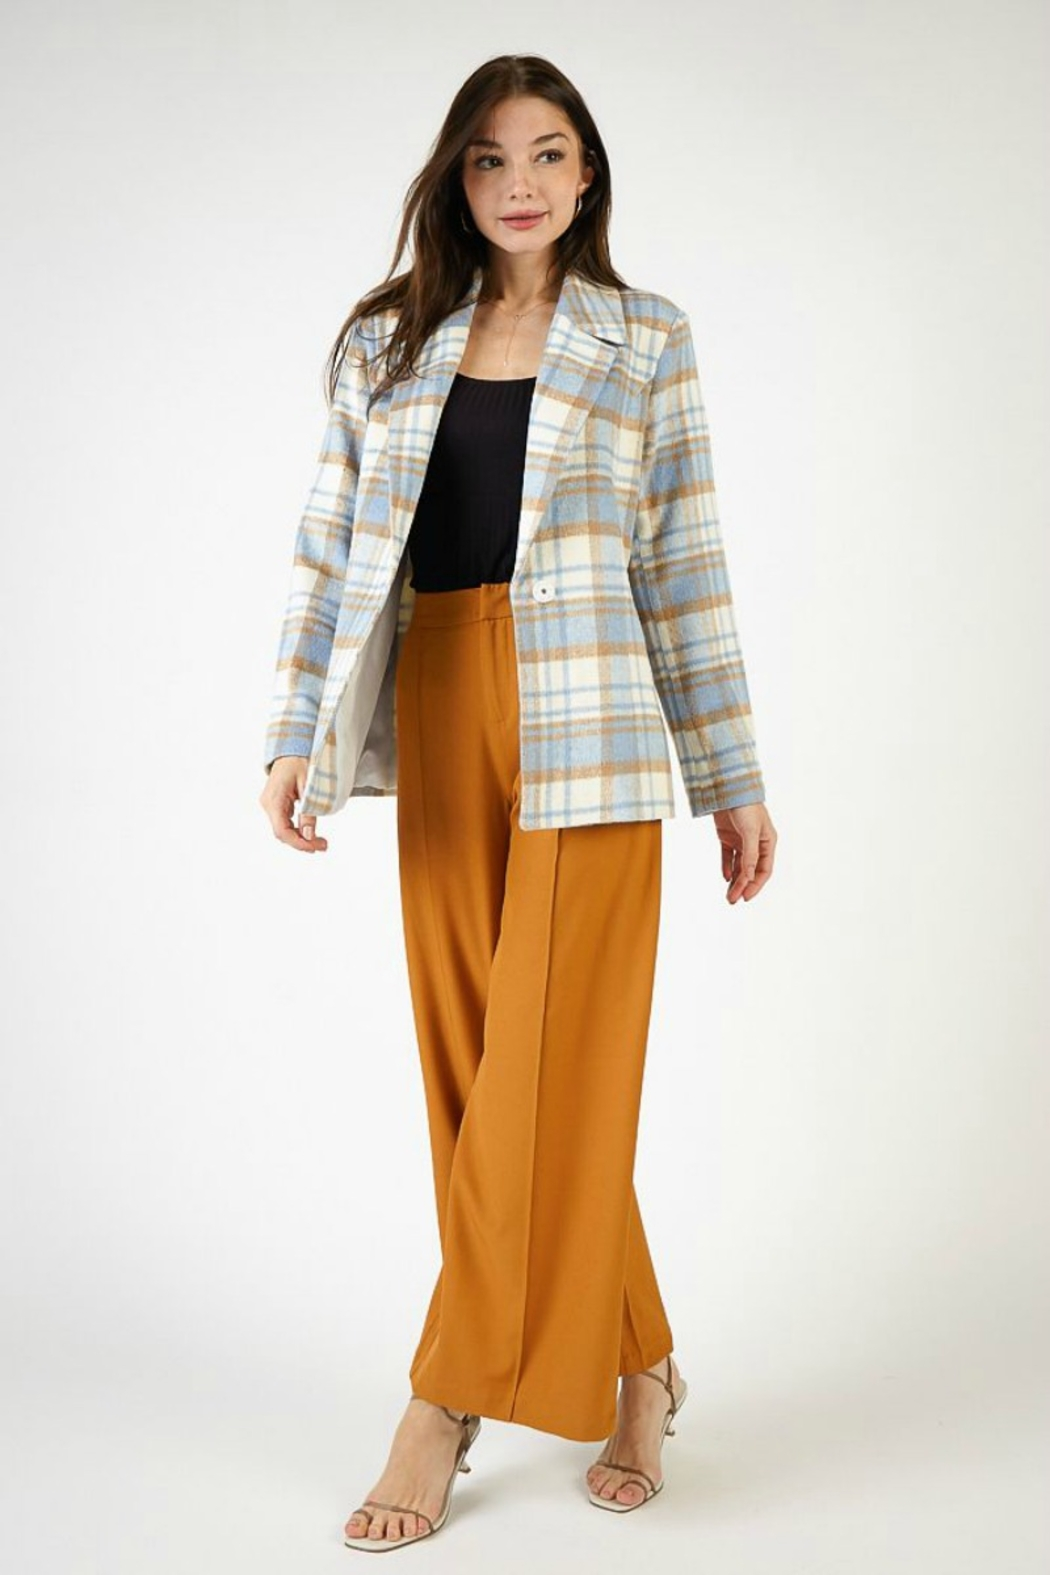 SAGE THE LABEL BENJY PLAID JACKET - Front Cropped Image